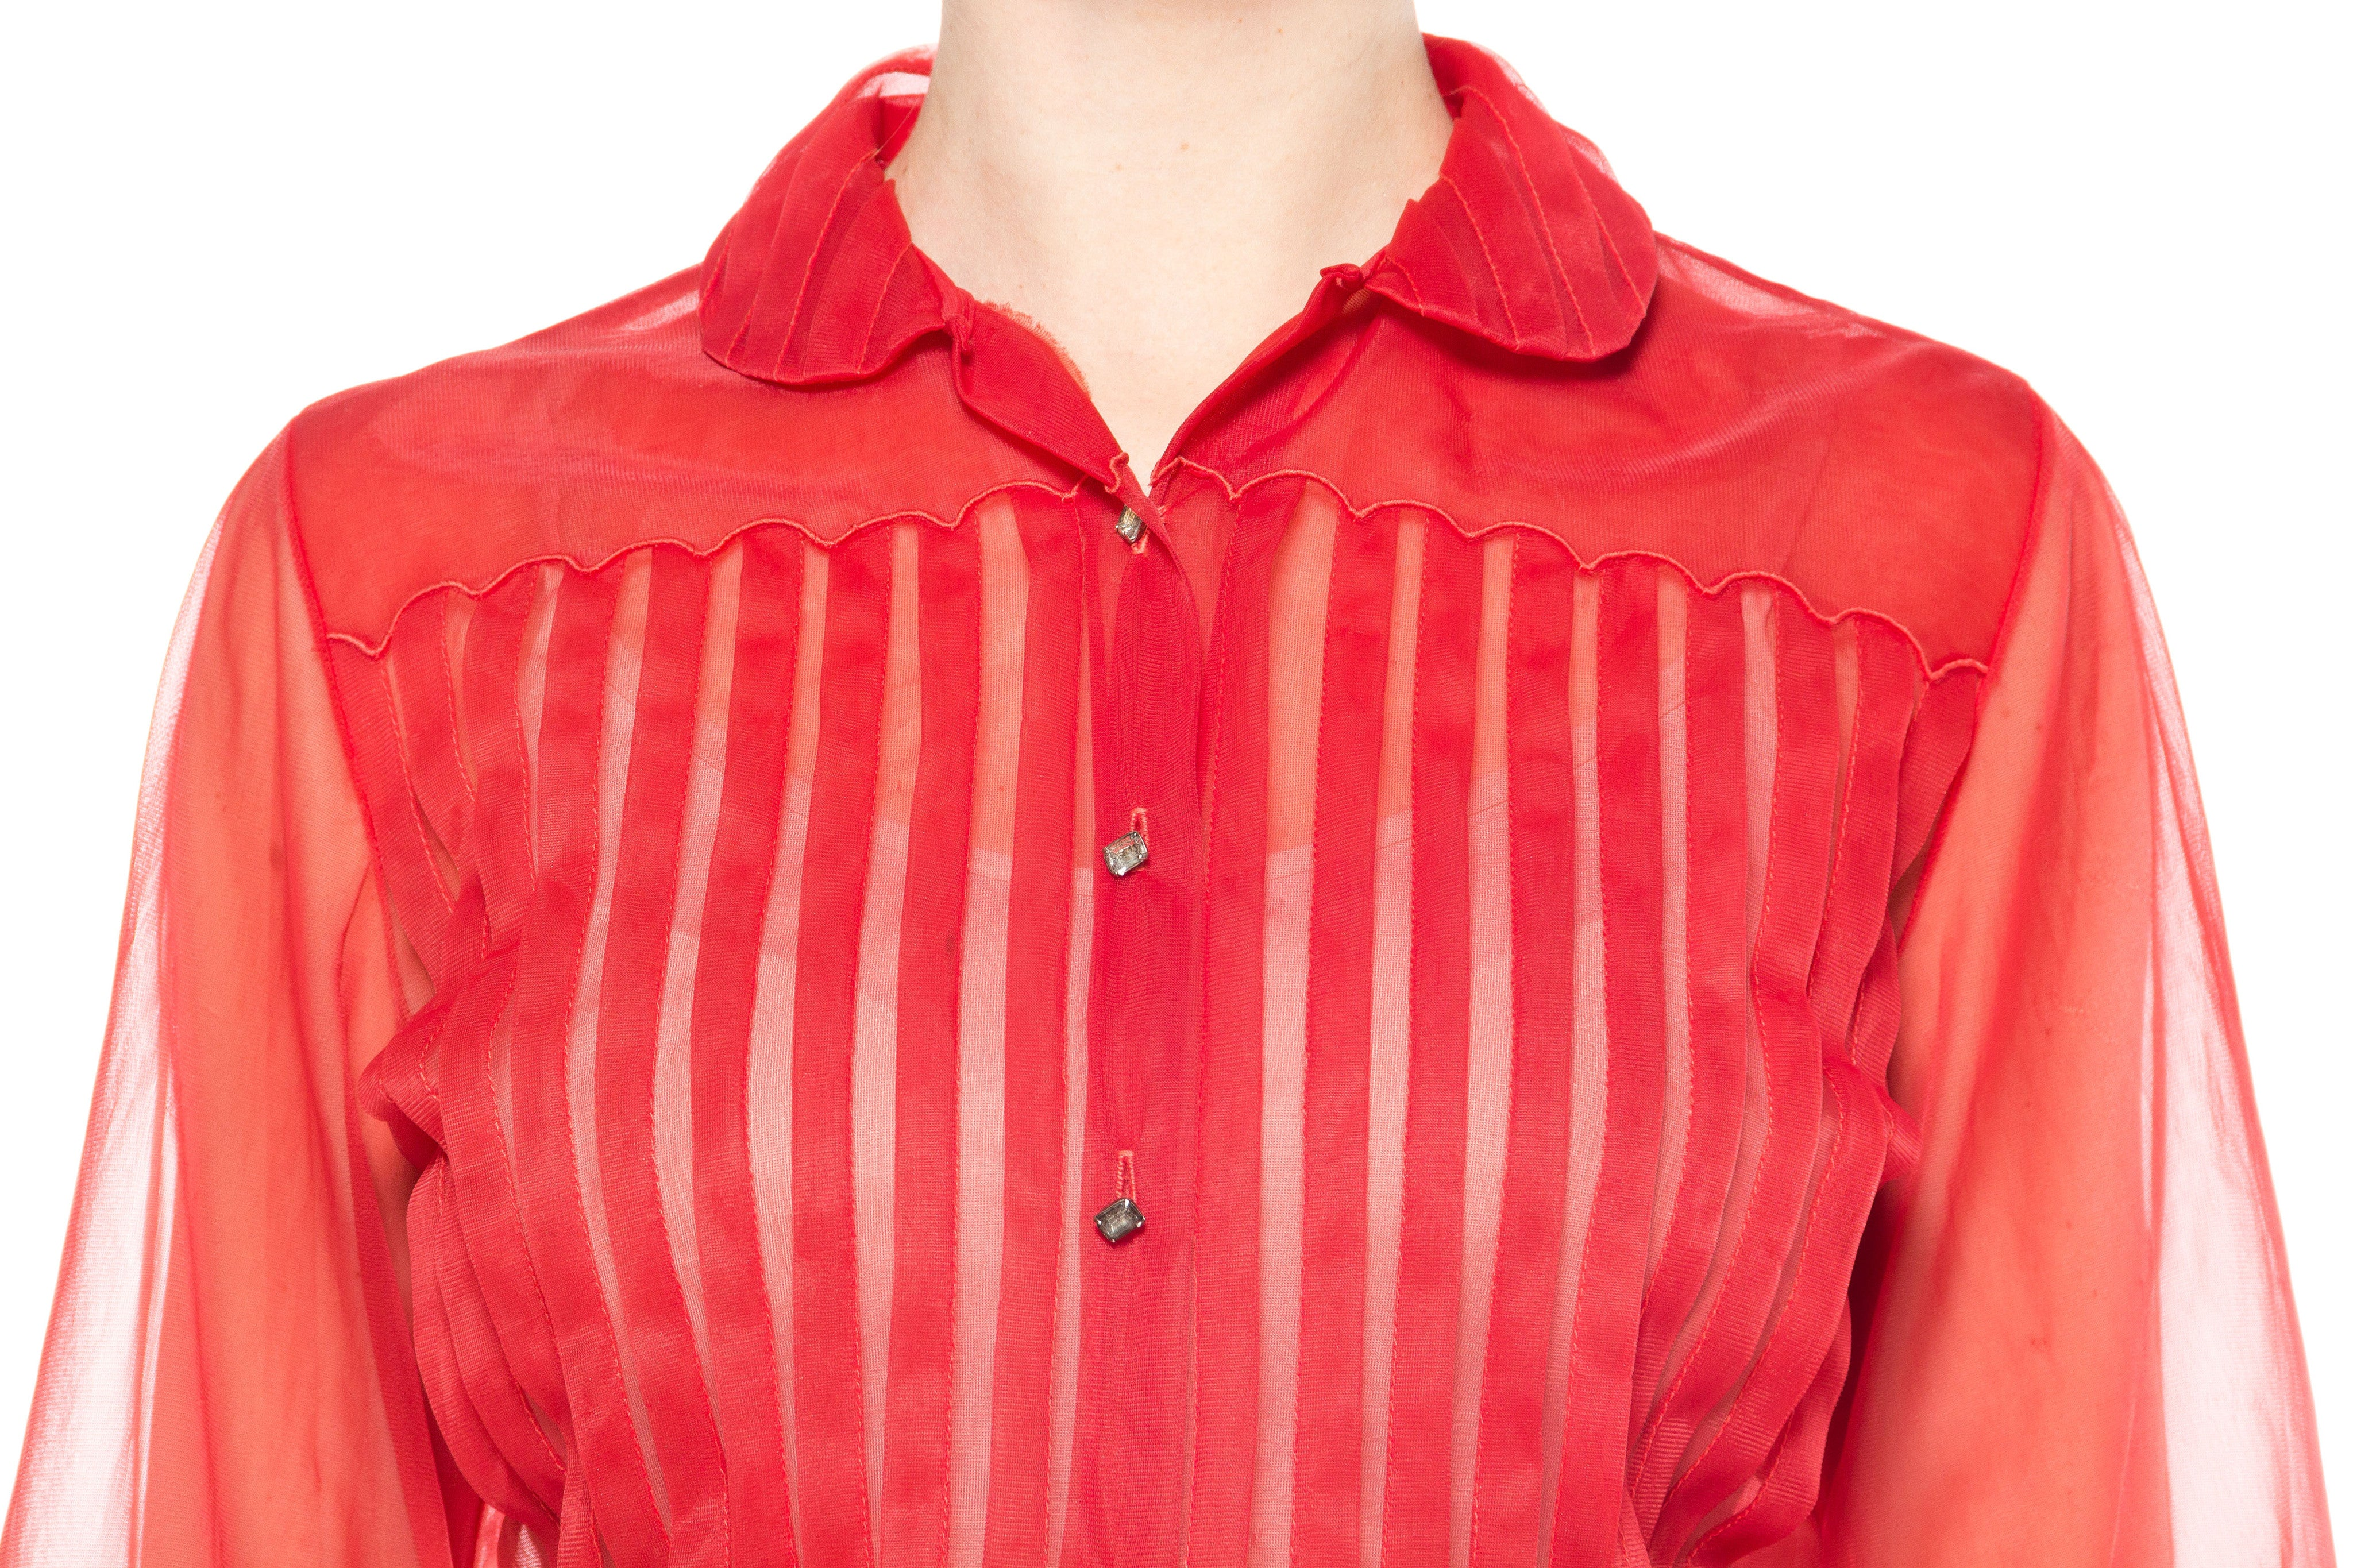 1950S Red Nylon Pleated Sheer Blouse With Rhinestone Buttons